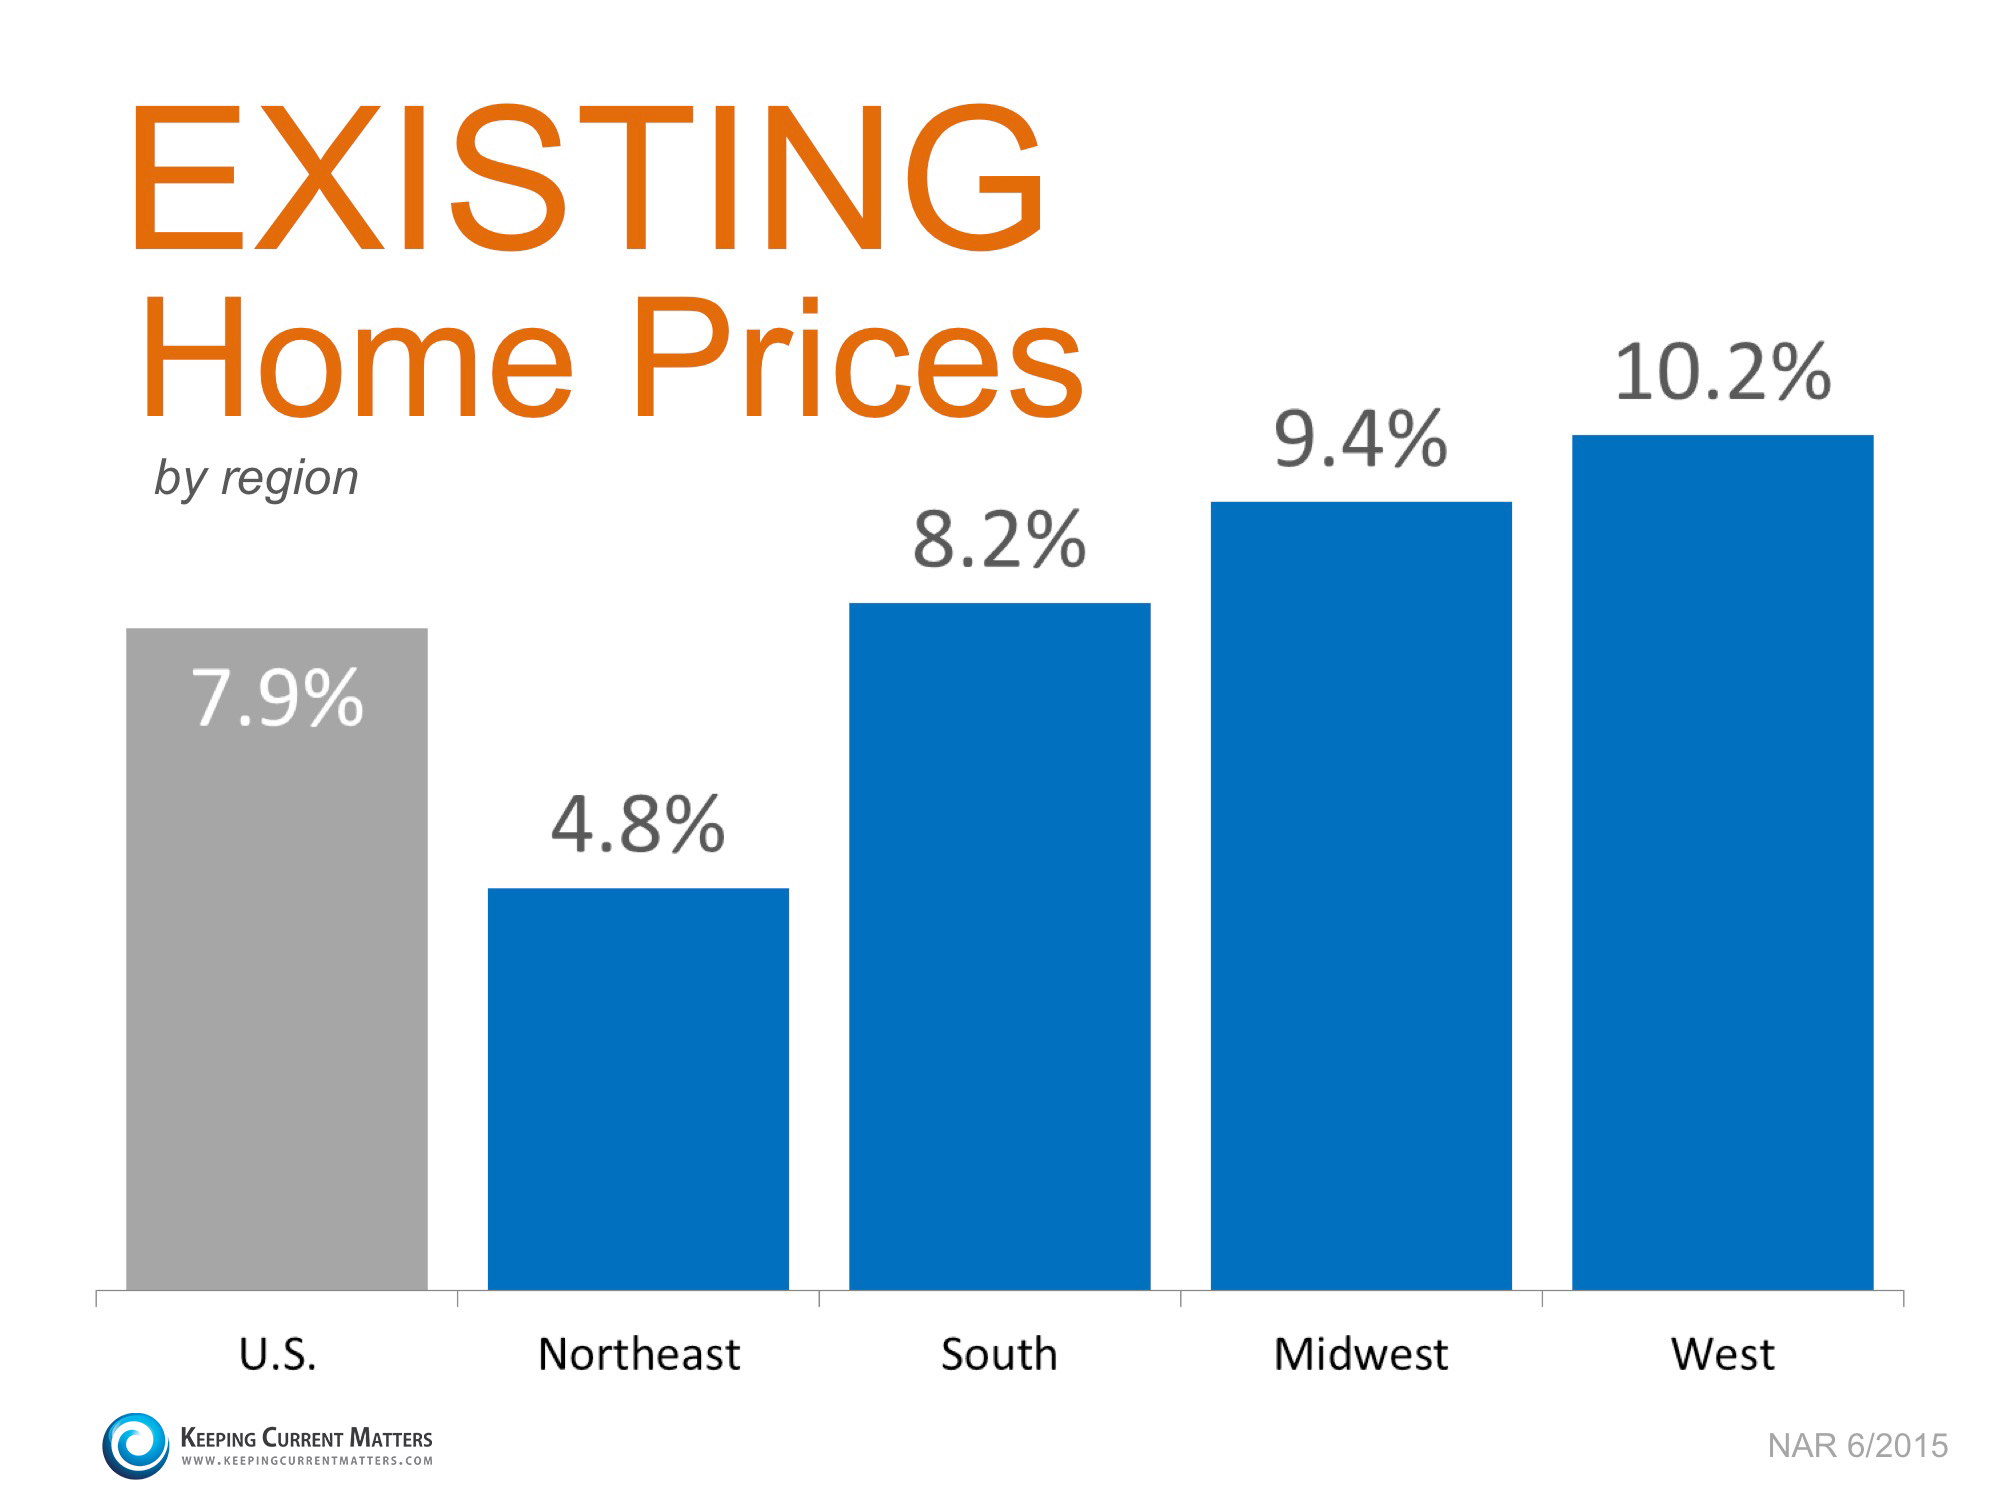 Existing Home Prices by Region | Keeping Current Matters